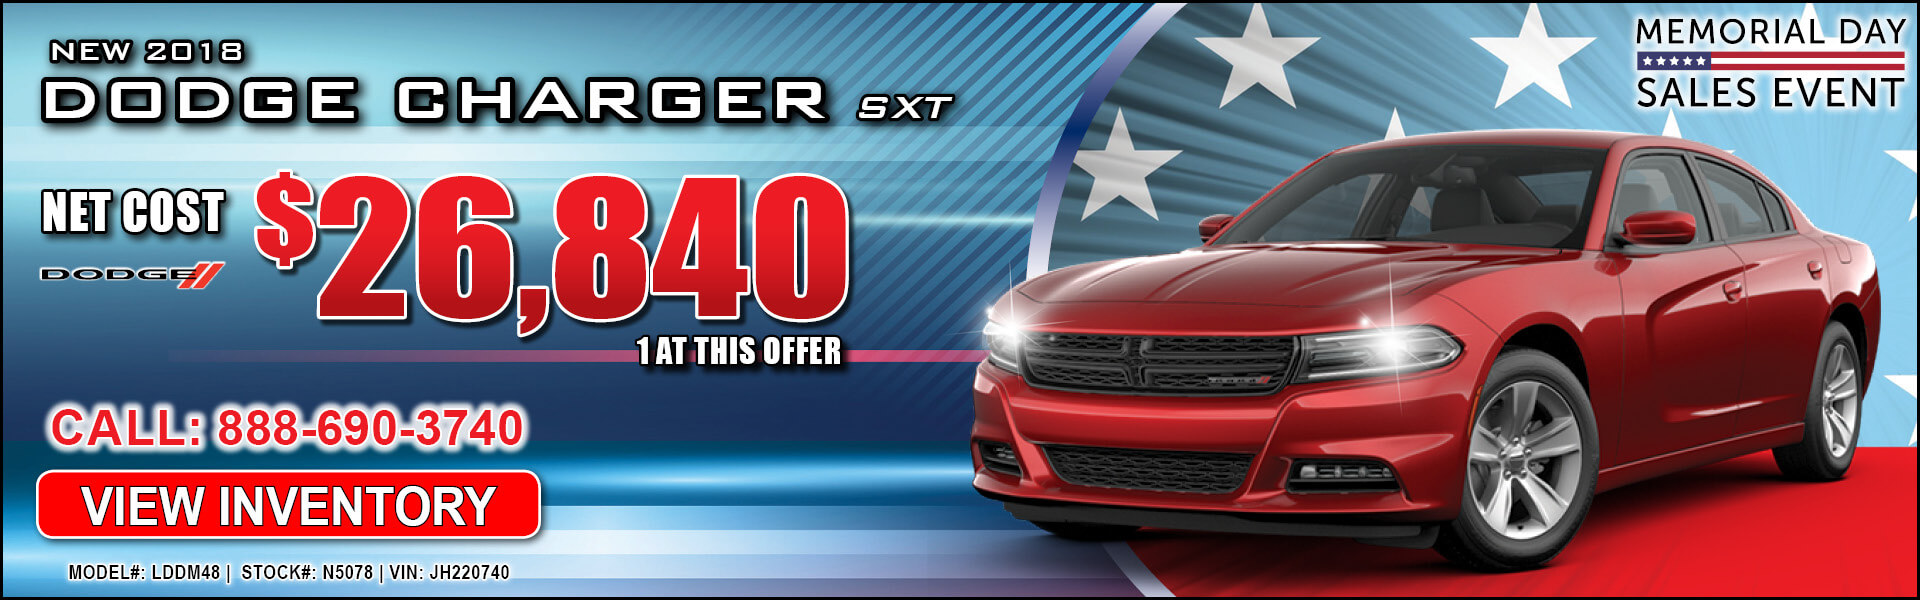 Dodge Charger $26,840